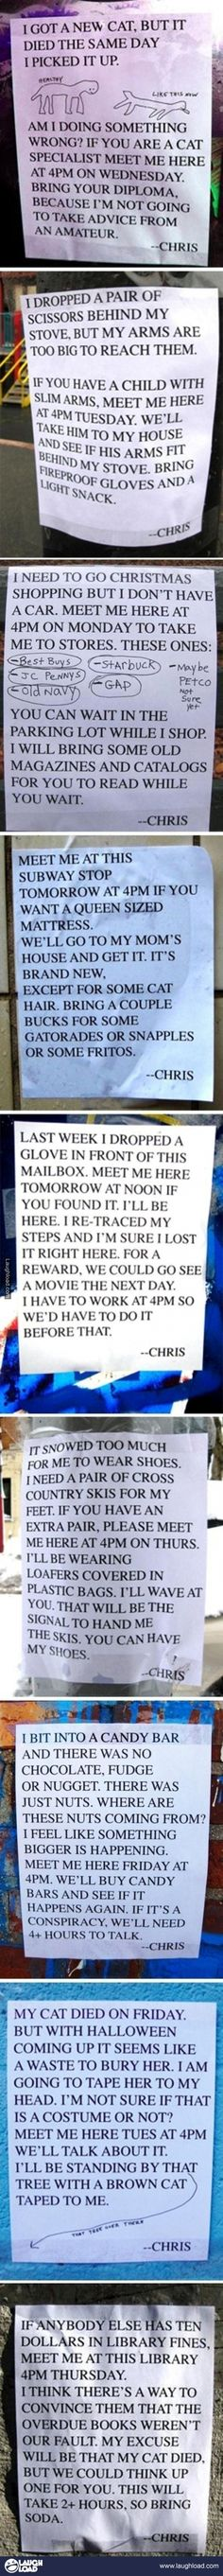 We NEED to meet Chris. I'll be sure to wear plastic bags on my shoes and a cat taped to my head. And don't worry... I'll come equipped with cross country skis, Fritos, snapple, all my library late fees and a minimum of 4 hours allotted to discussion.